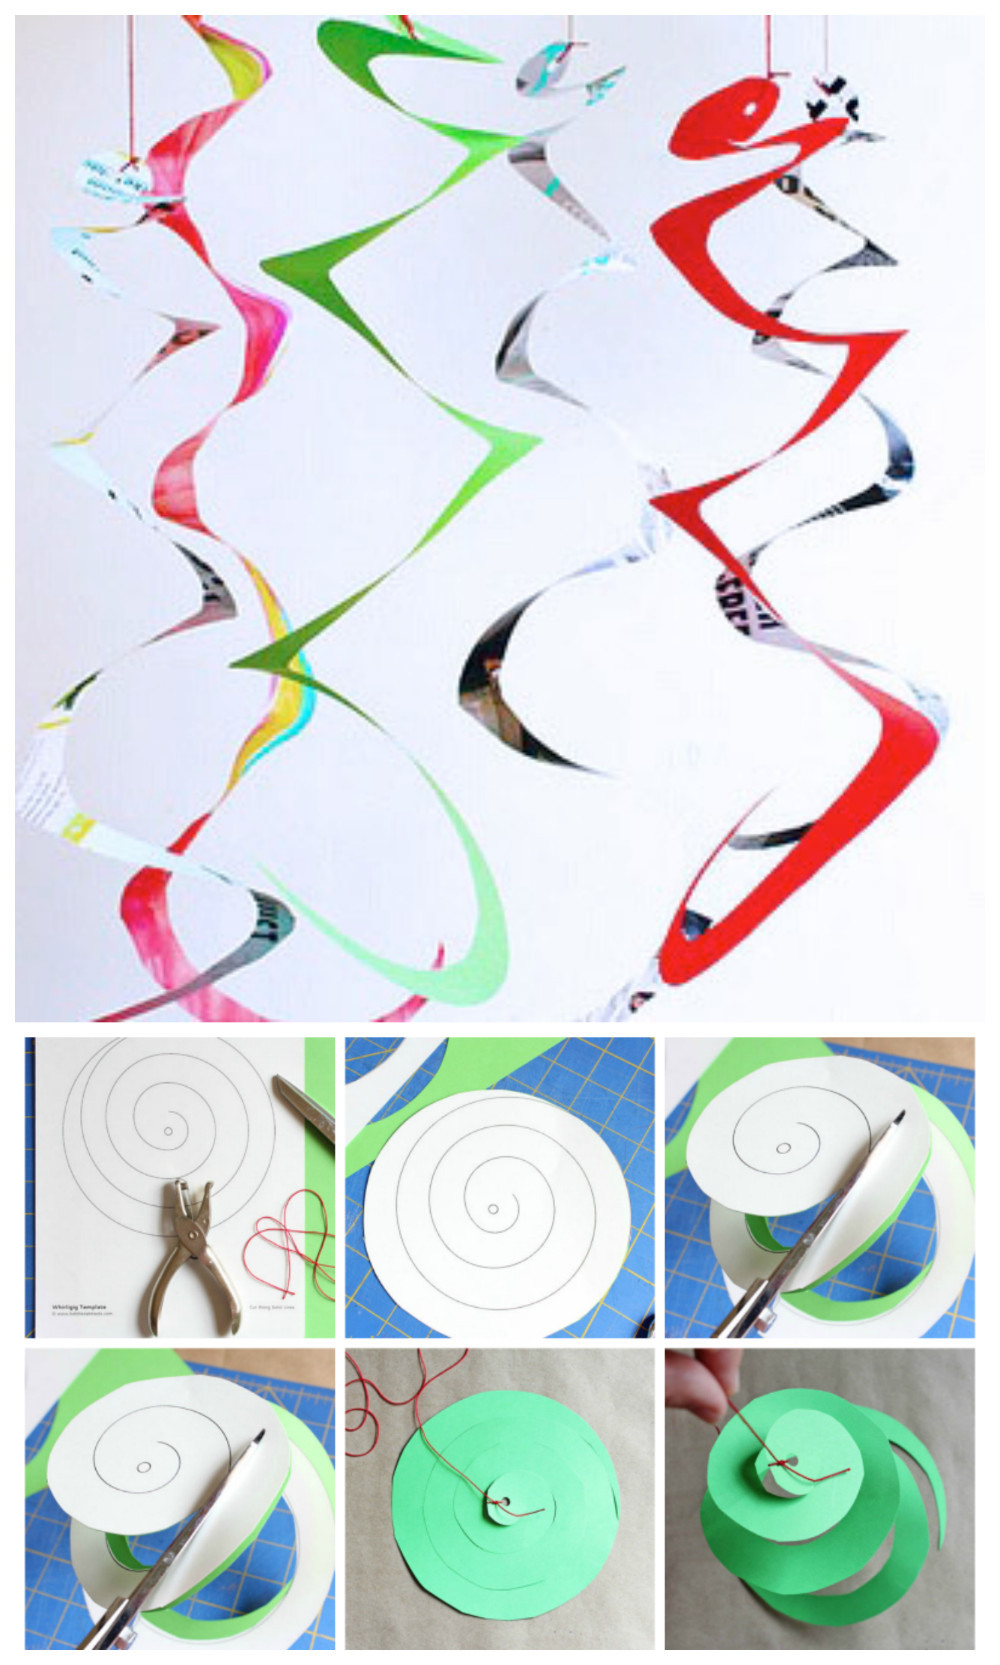 DIY Science Projects For Adults  Science and Art for Kids Whirligigs in 2020